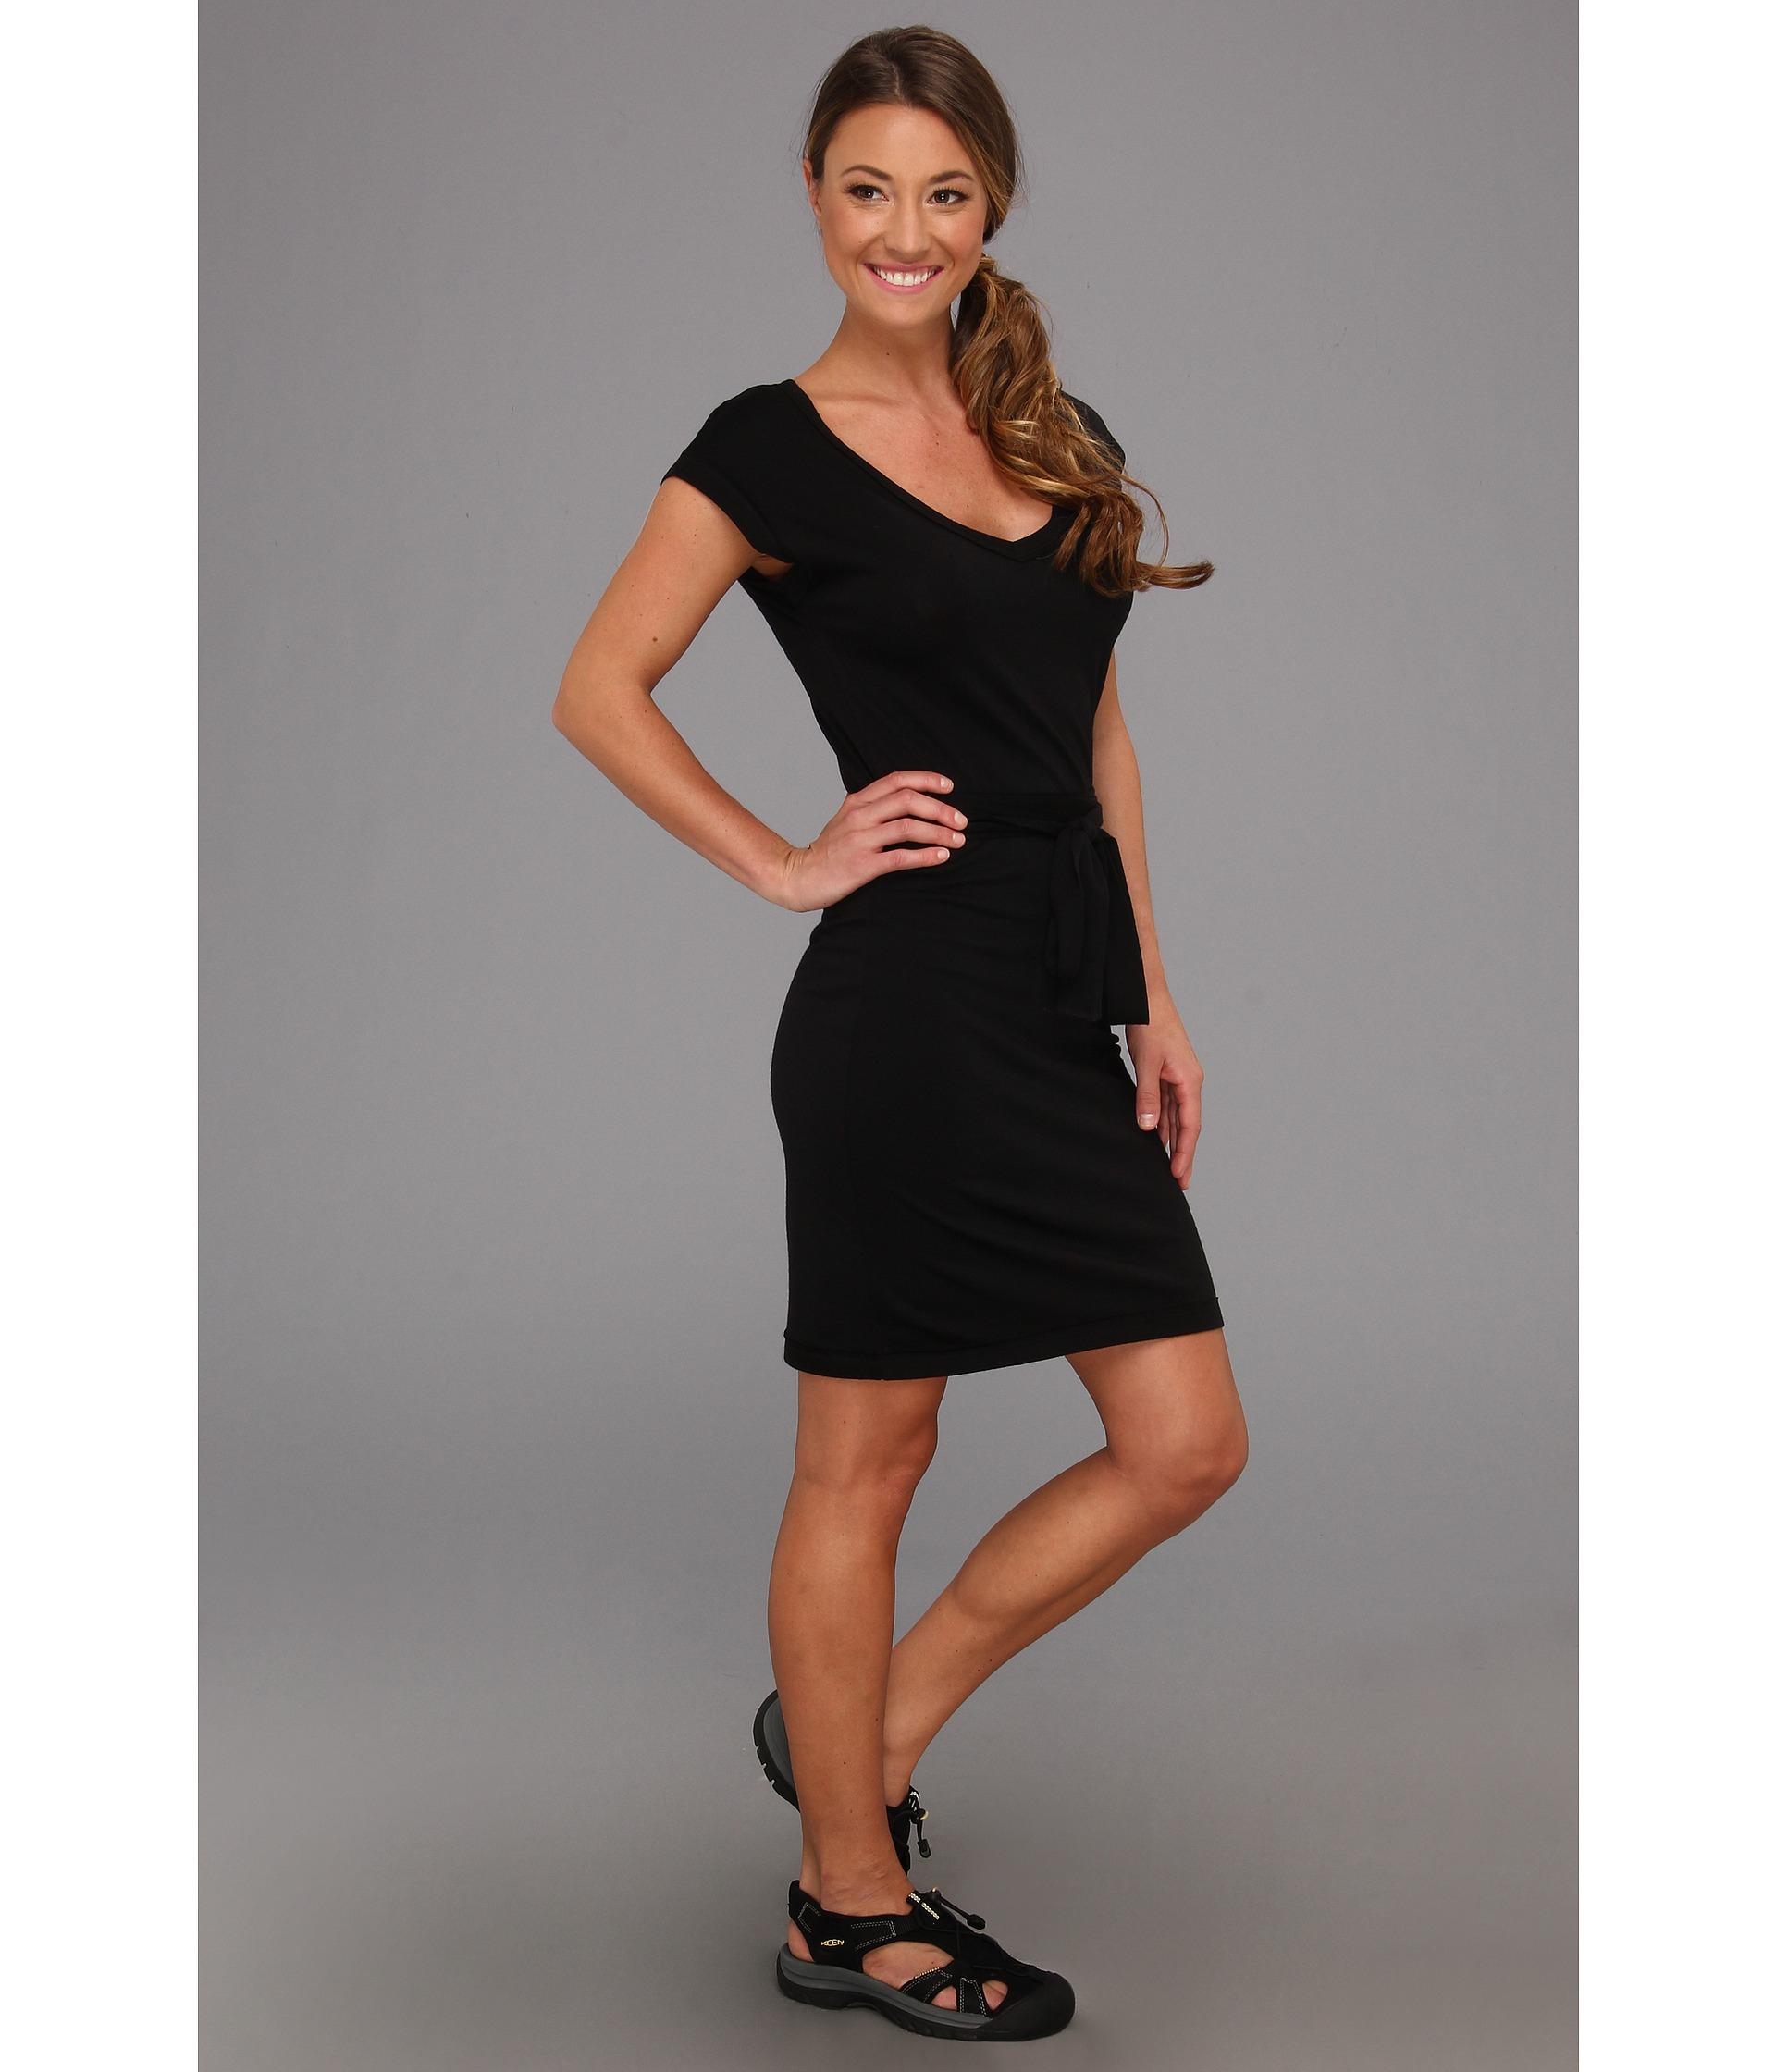 Icebreaker Villa Dress Black In Lyst rWQBCoxde